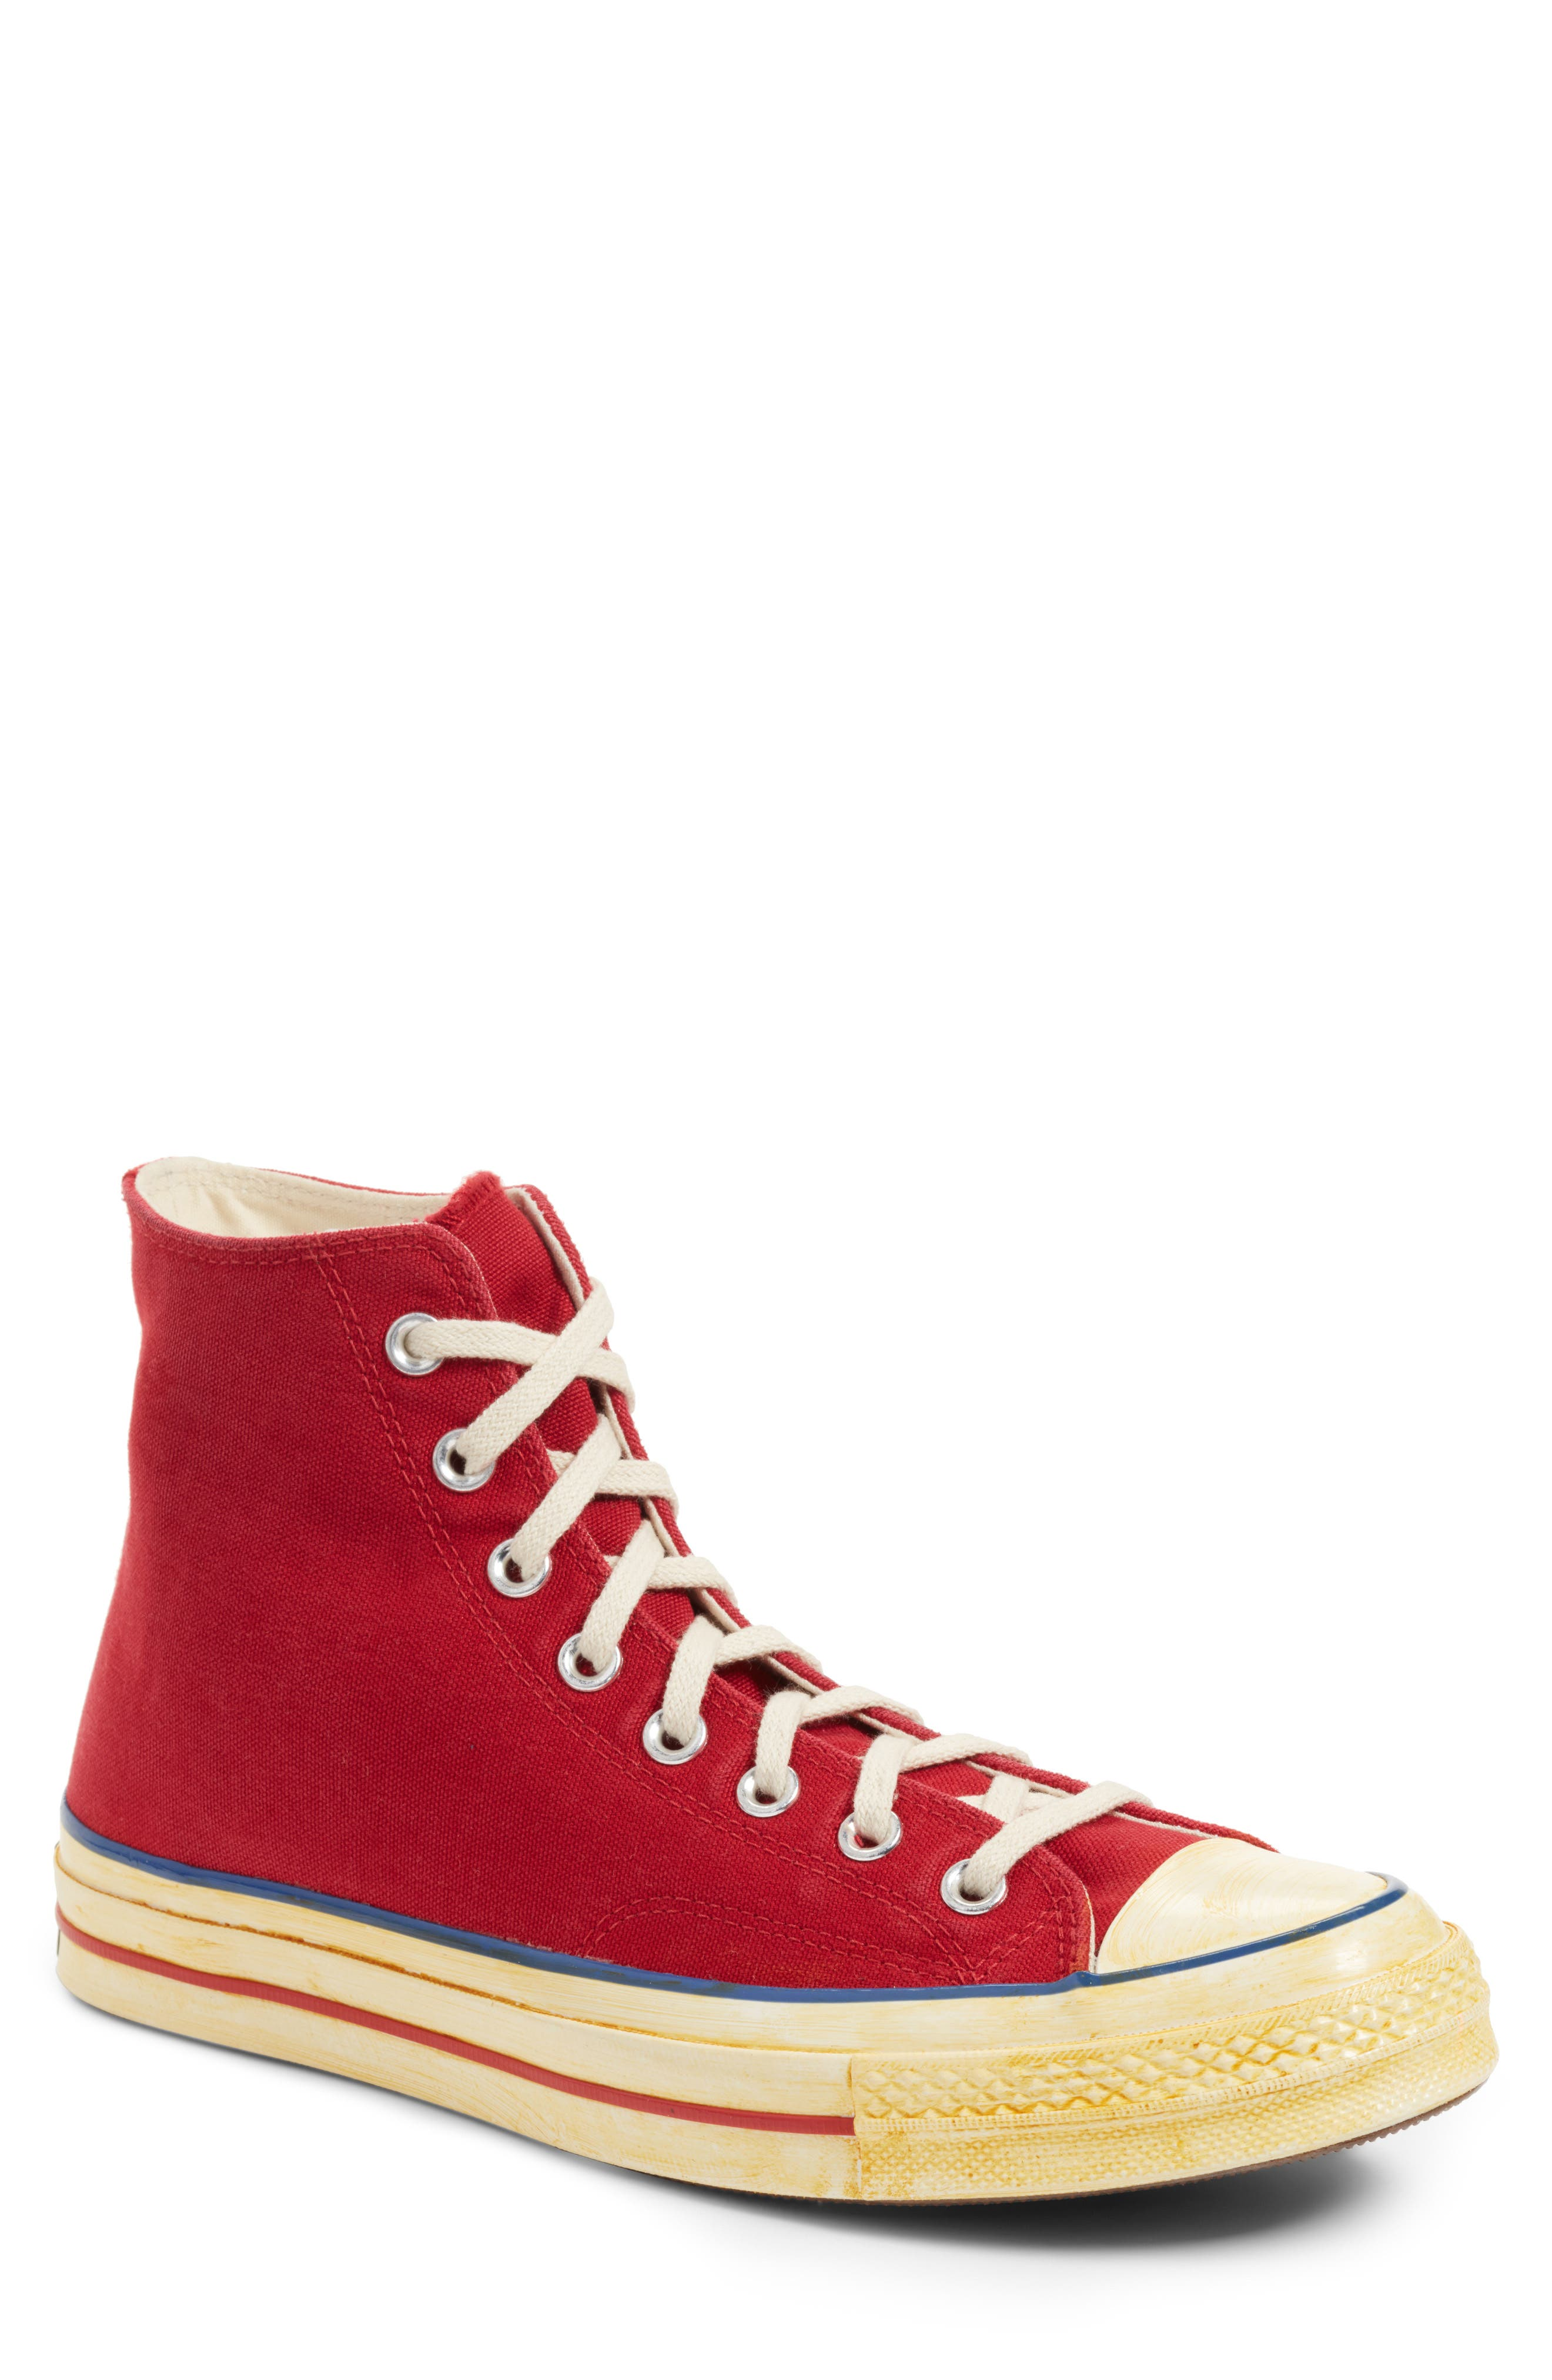 Chuck Taylor<sup>®</sup> All Star<sup>®</sup> 70 High Top Sneaker,                         Main,                         color, 608